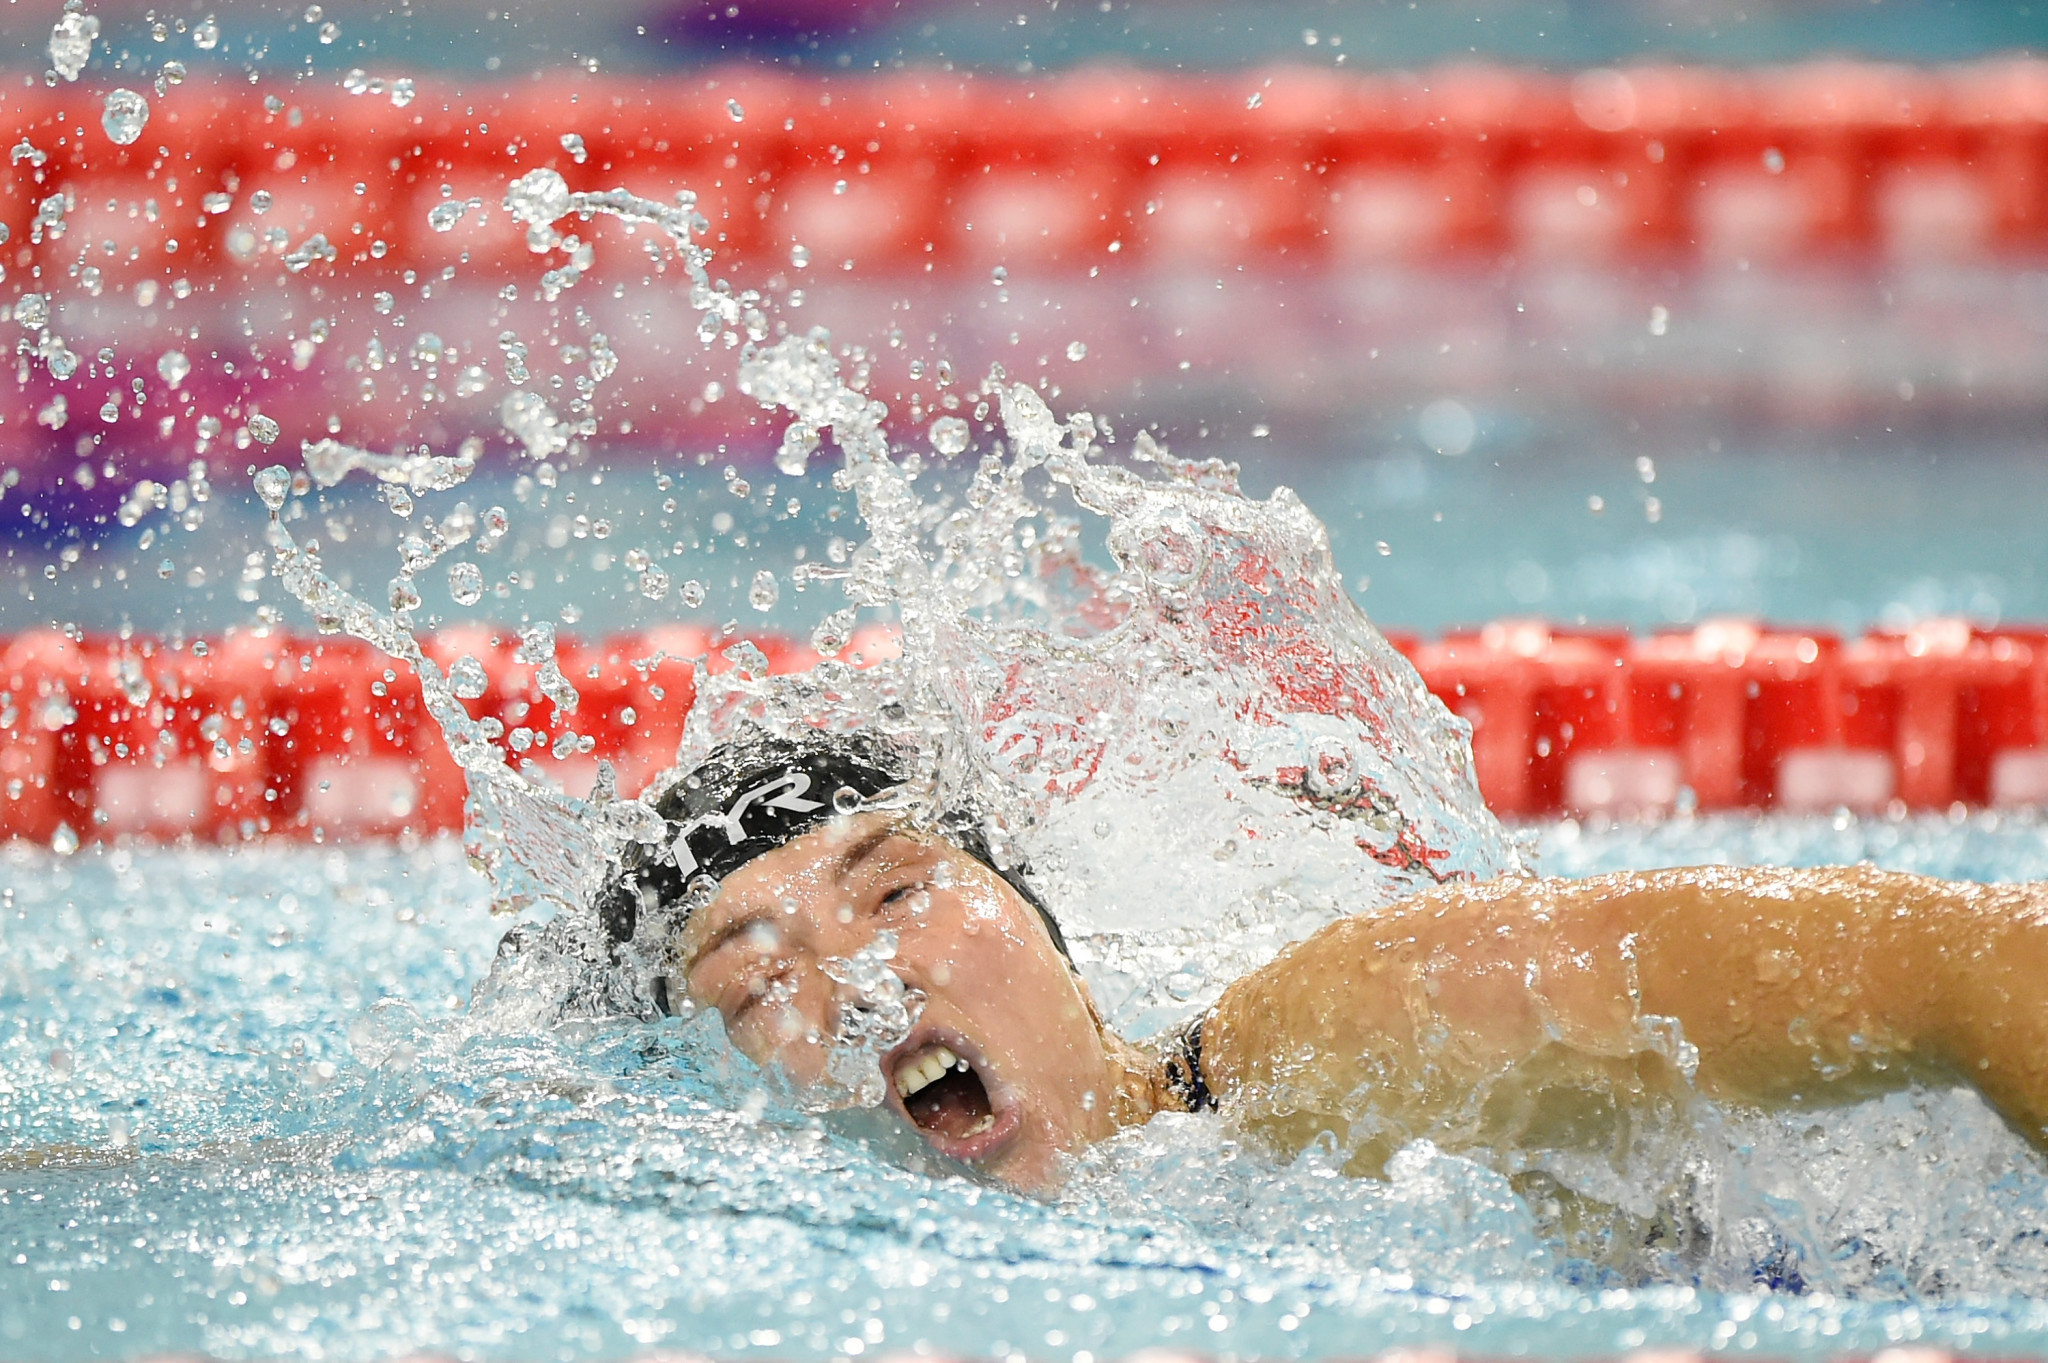 Volha Silkina won women's gold in Budapest ©Getty Images